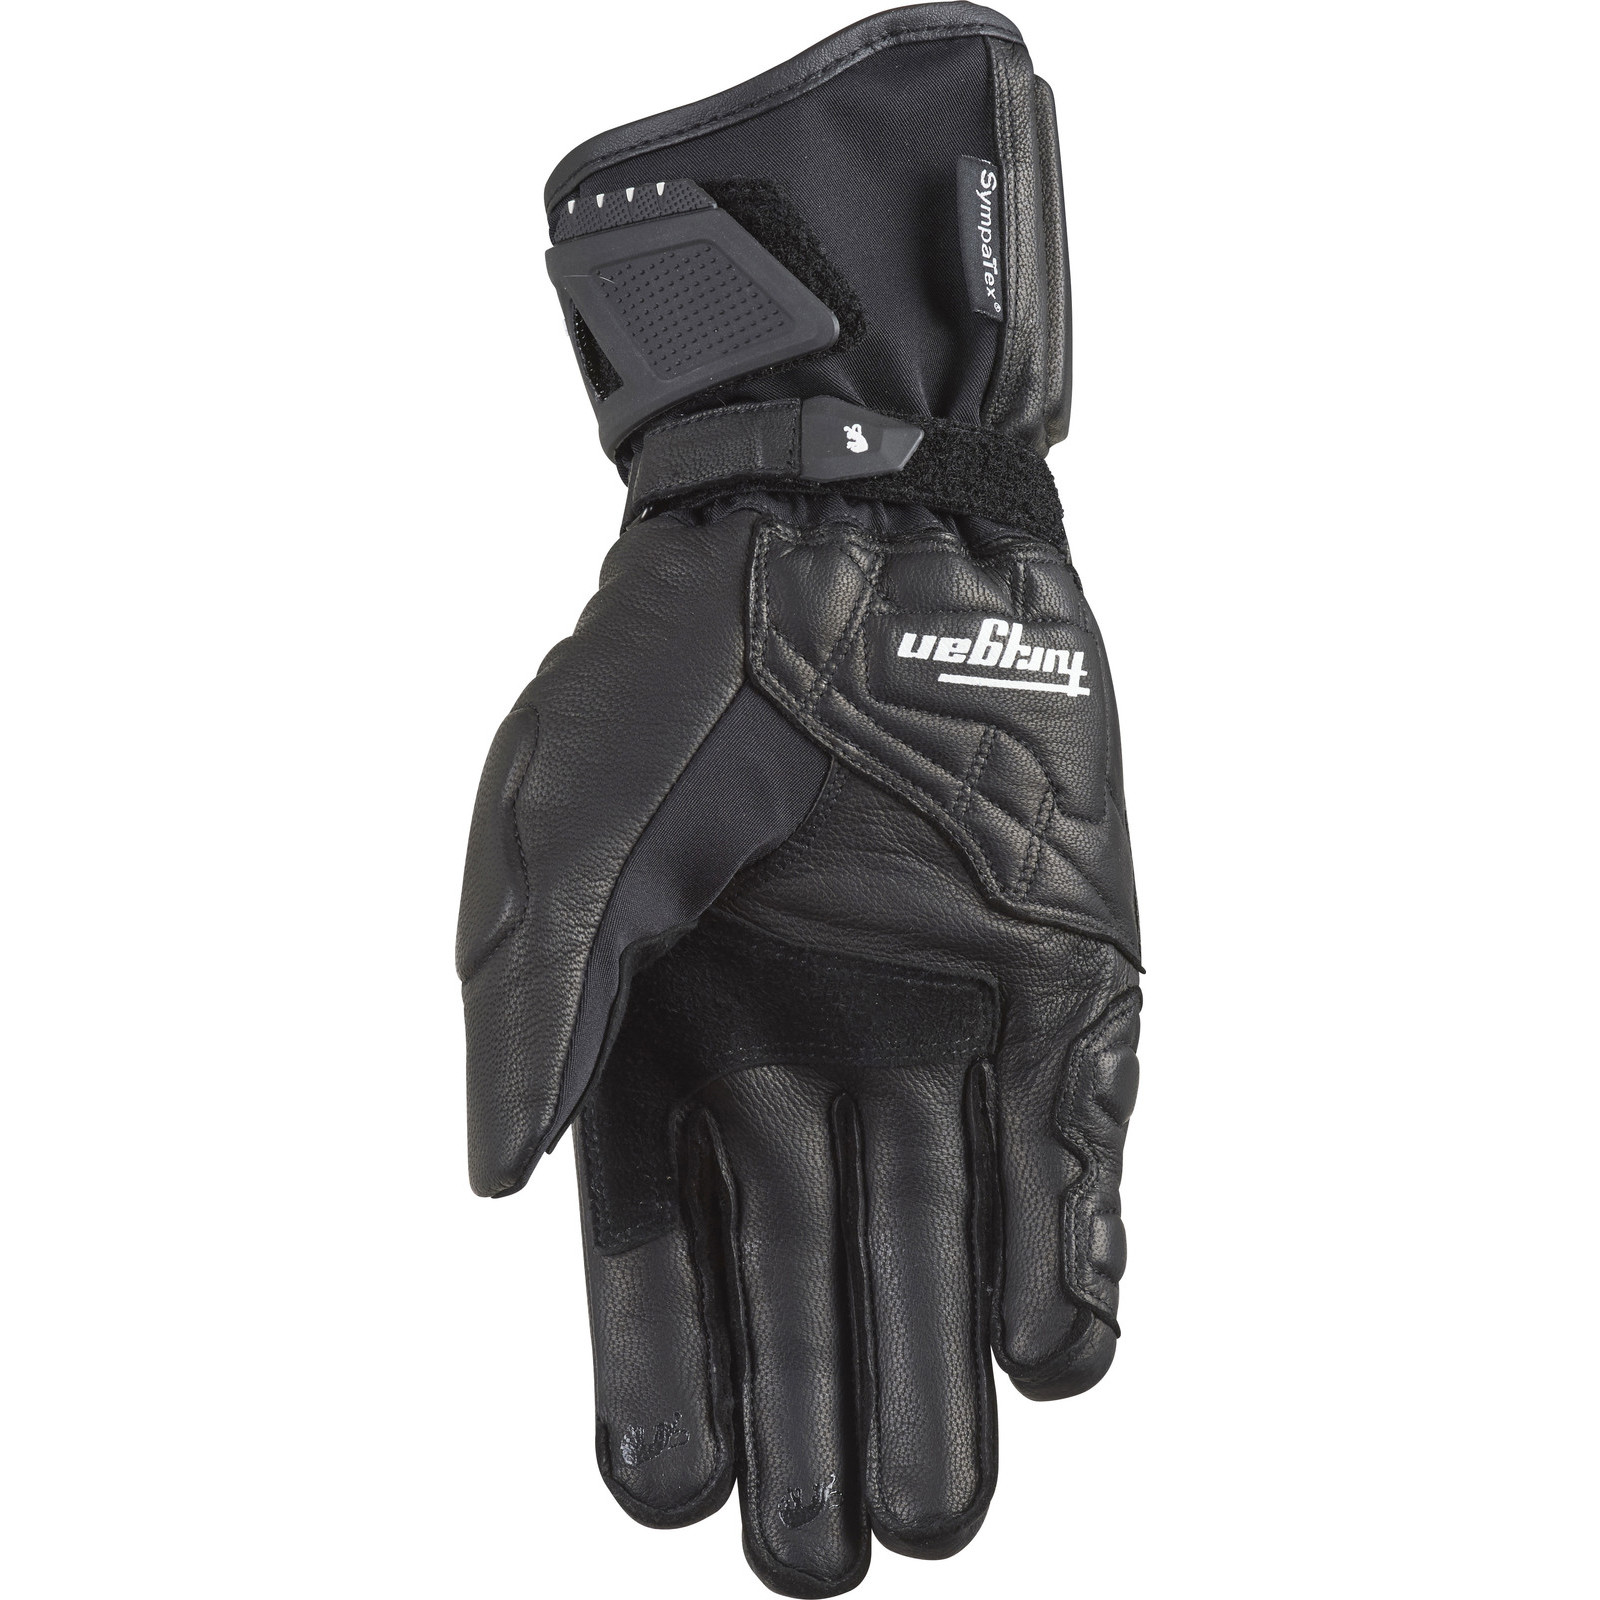 Motorcycle gloves thinsulate - Furygan Ace Sympatex Evo Leather Motorcycle Gloves Sports